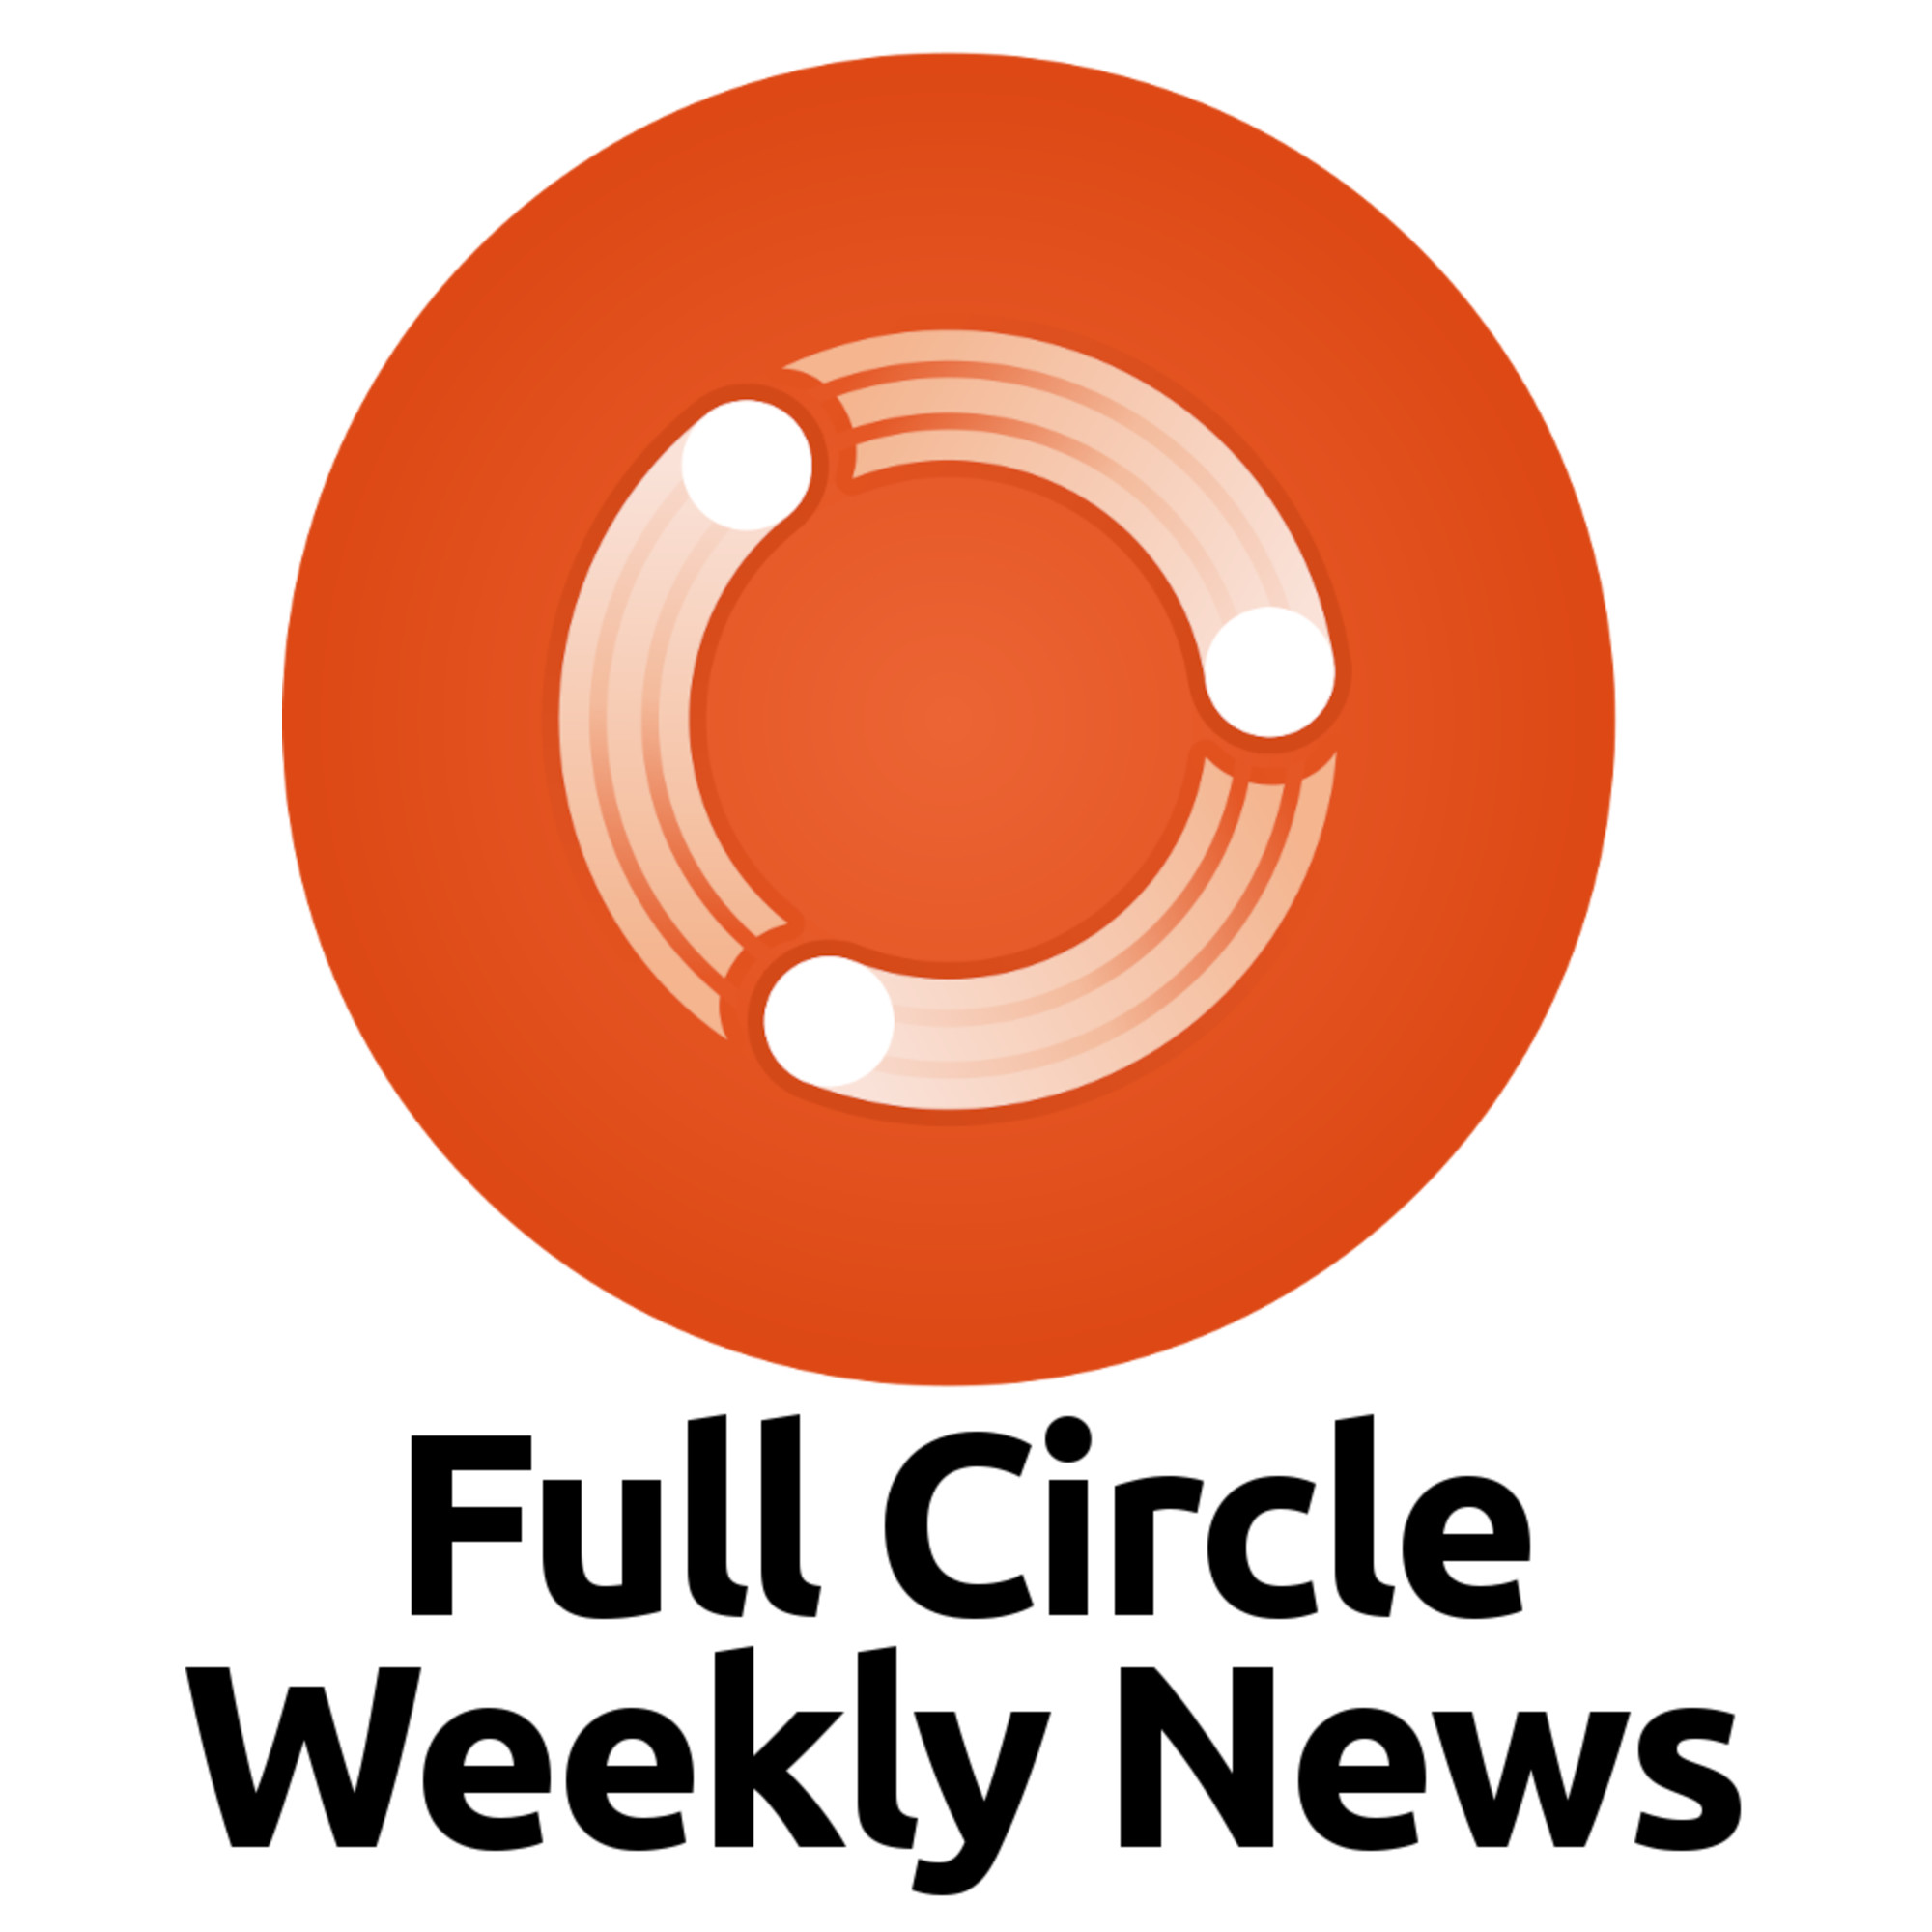 The Full Circle Weekly News